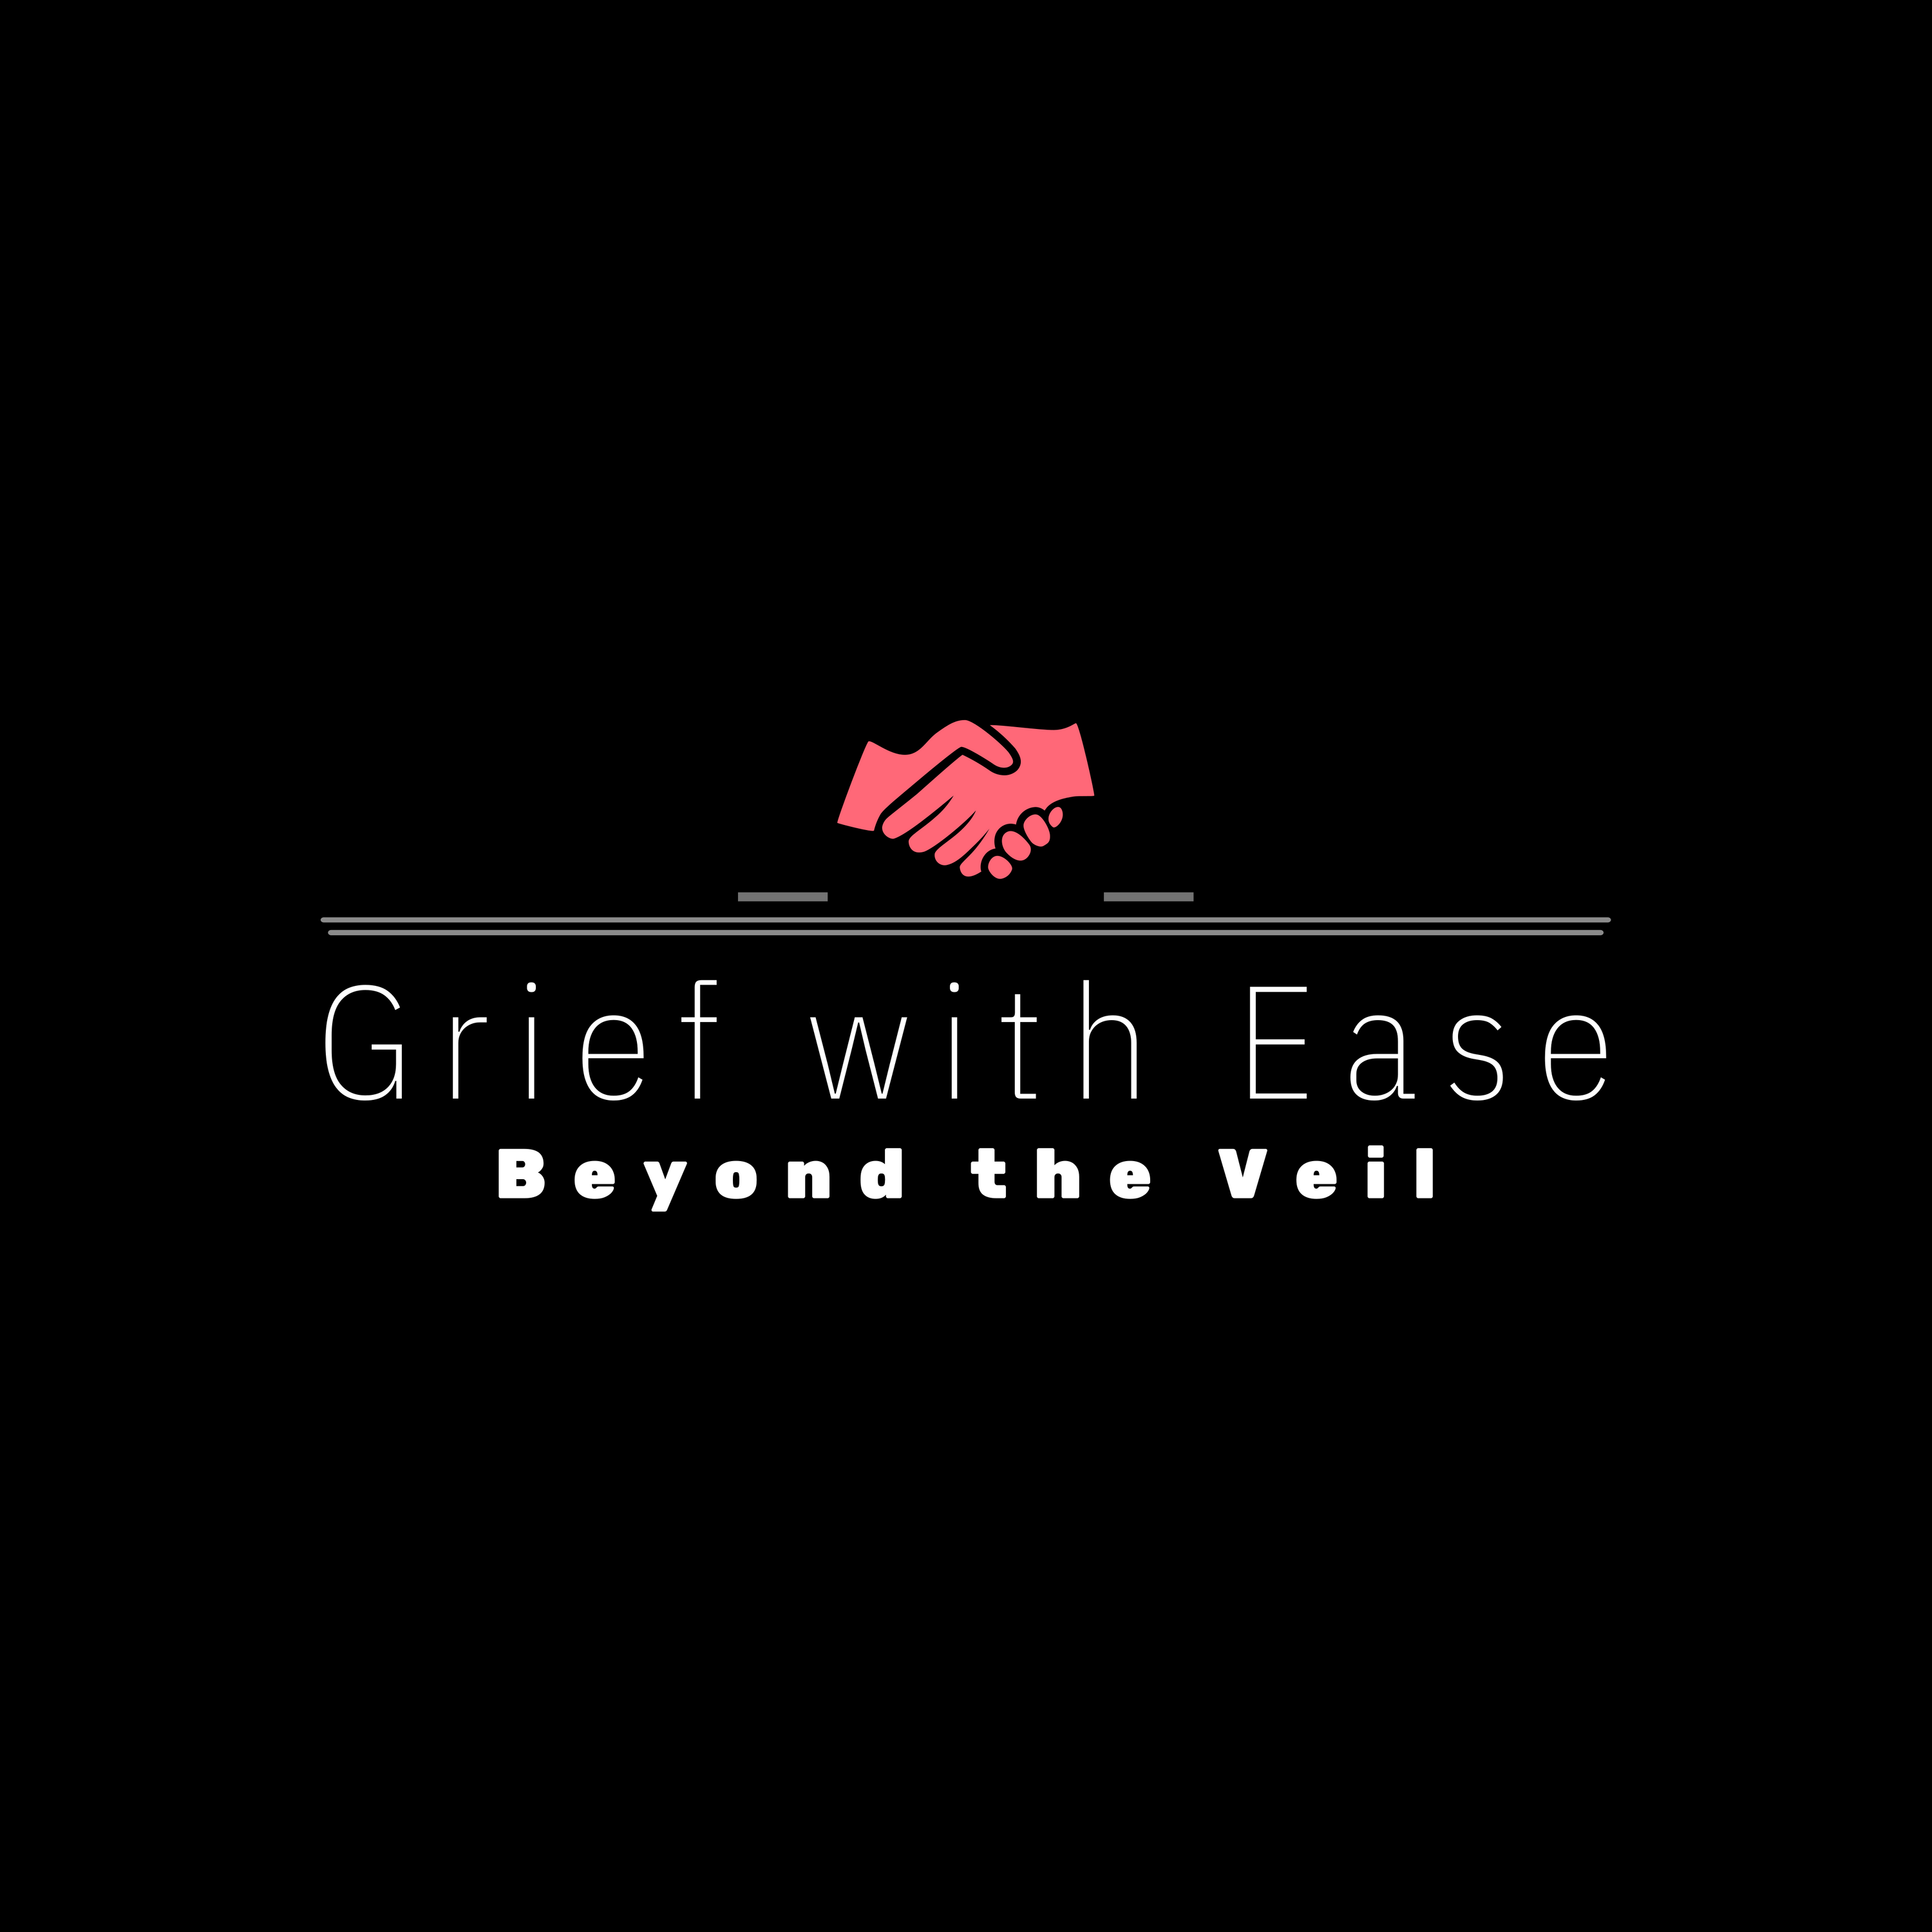 Grief with Ease